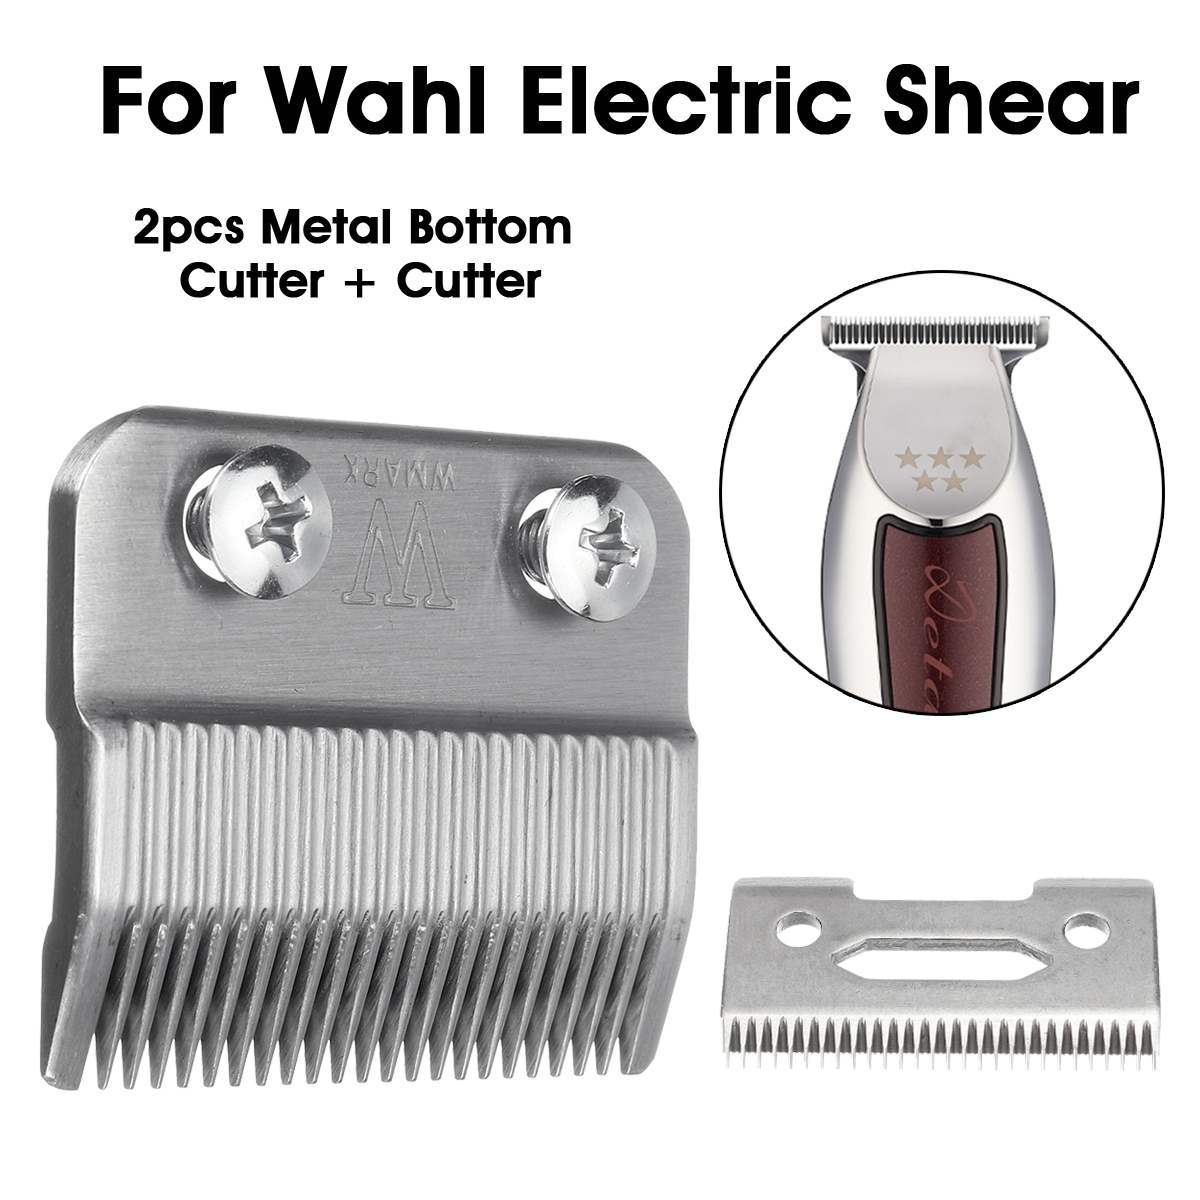 Blade-Cutter Trimmers Shear Hair-Clipper Barber Electric Wahl Home-Use Metal For 2pcs